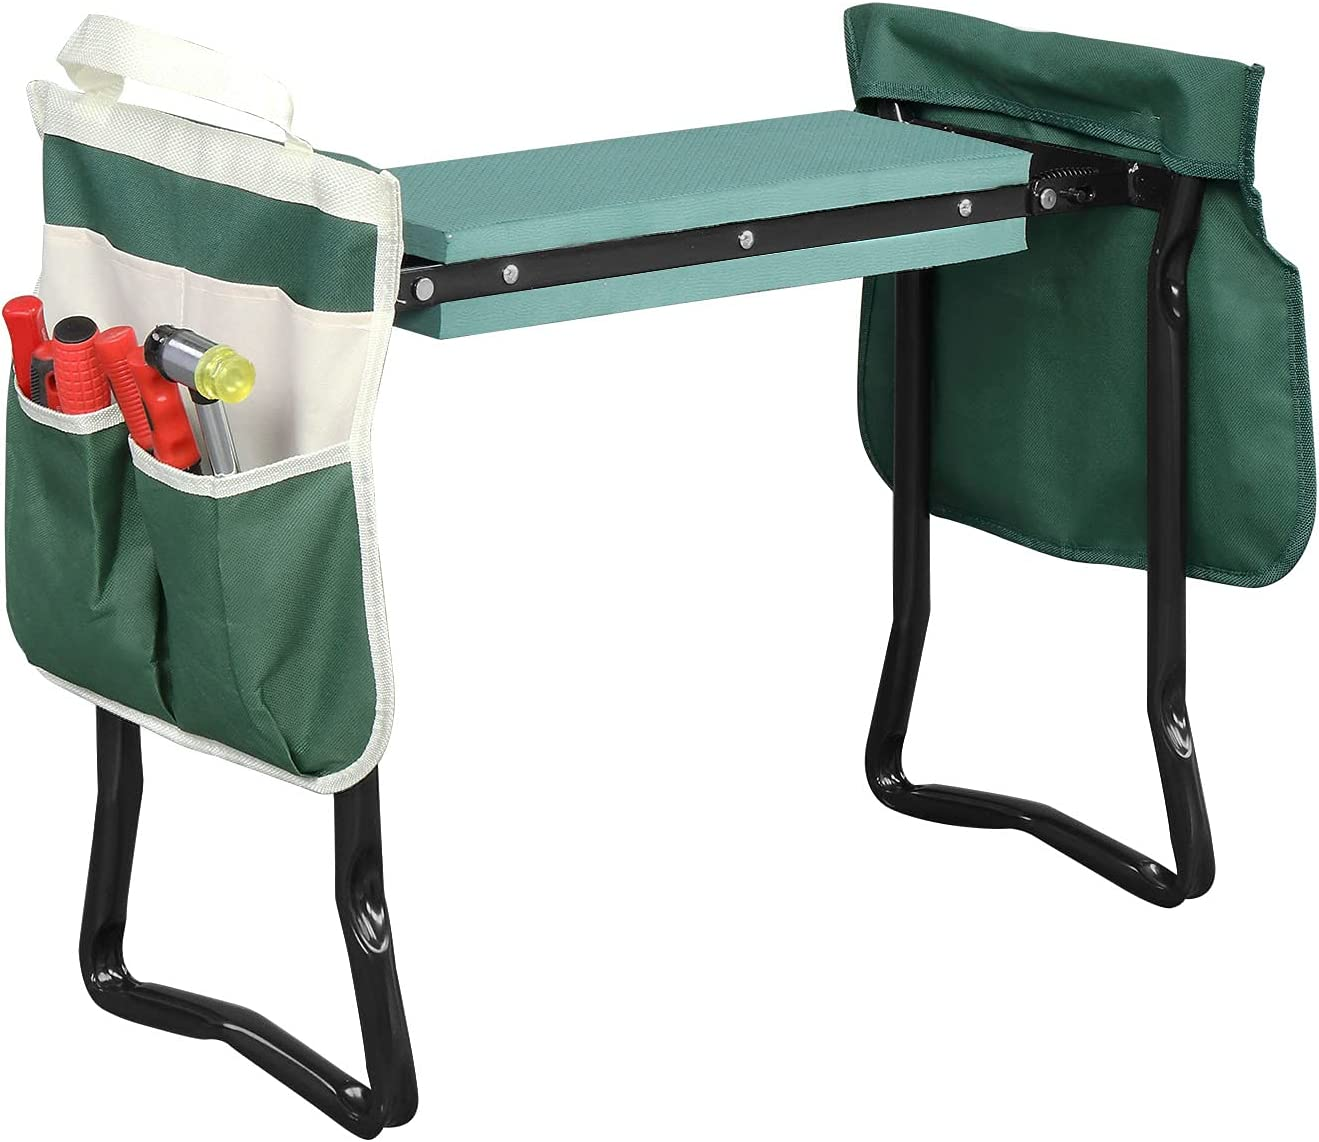 VINGLI Garden Kneeler and Seat Tucson Mall discount Upgraded Stool Thicken Pad with